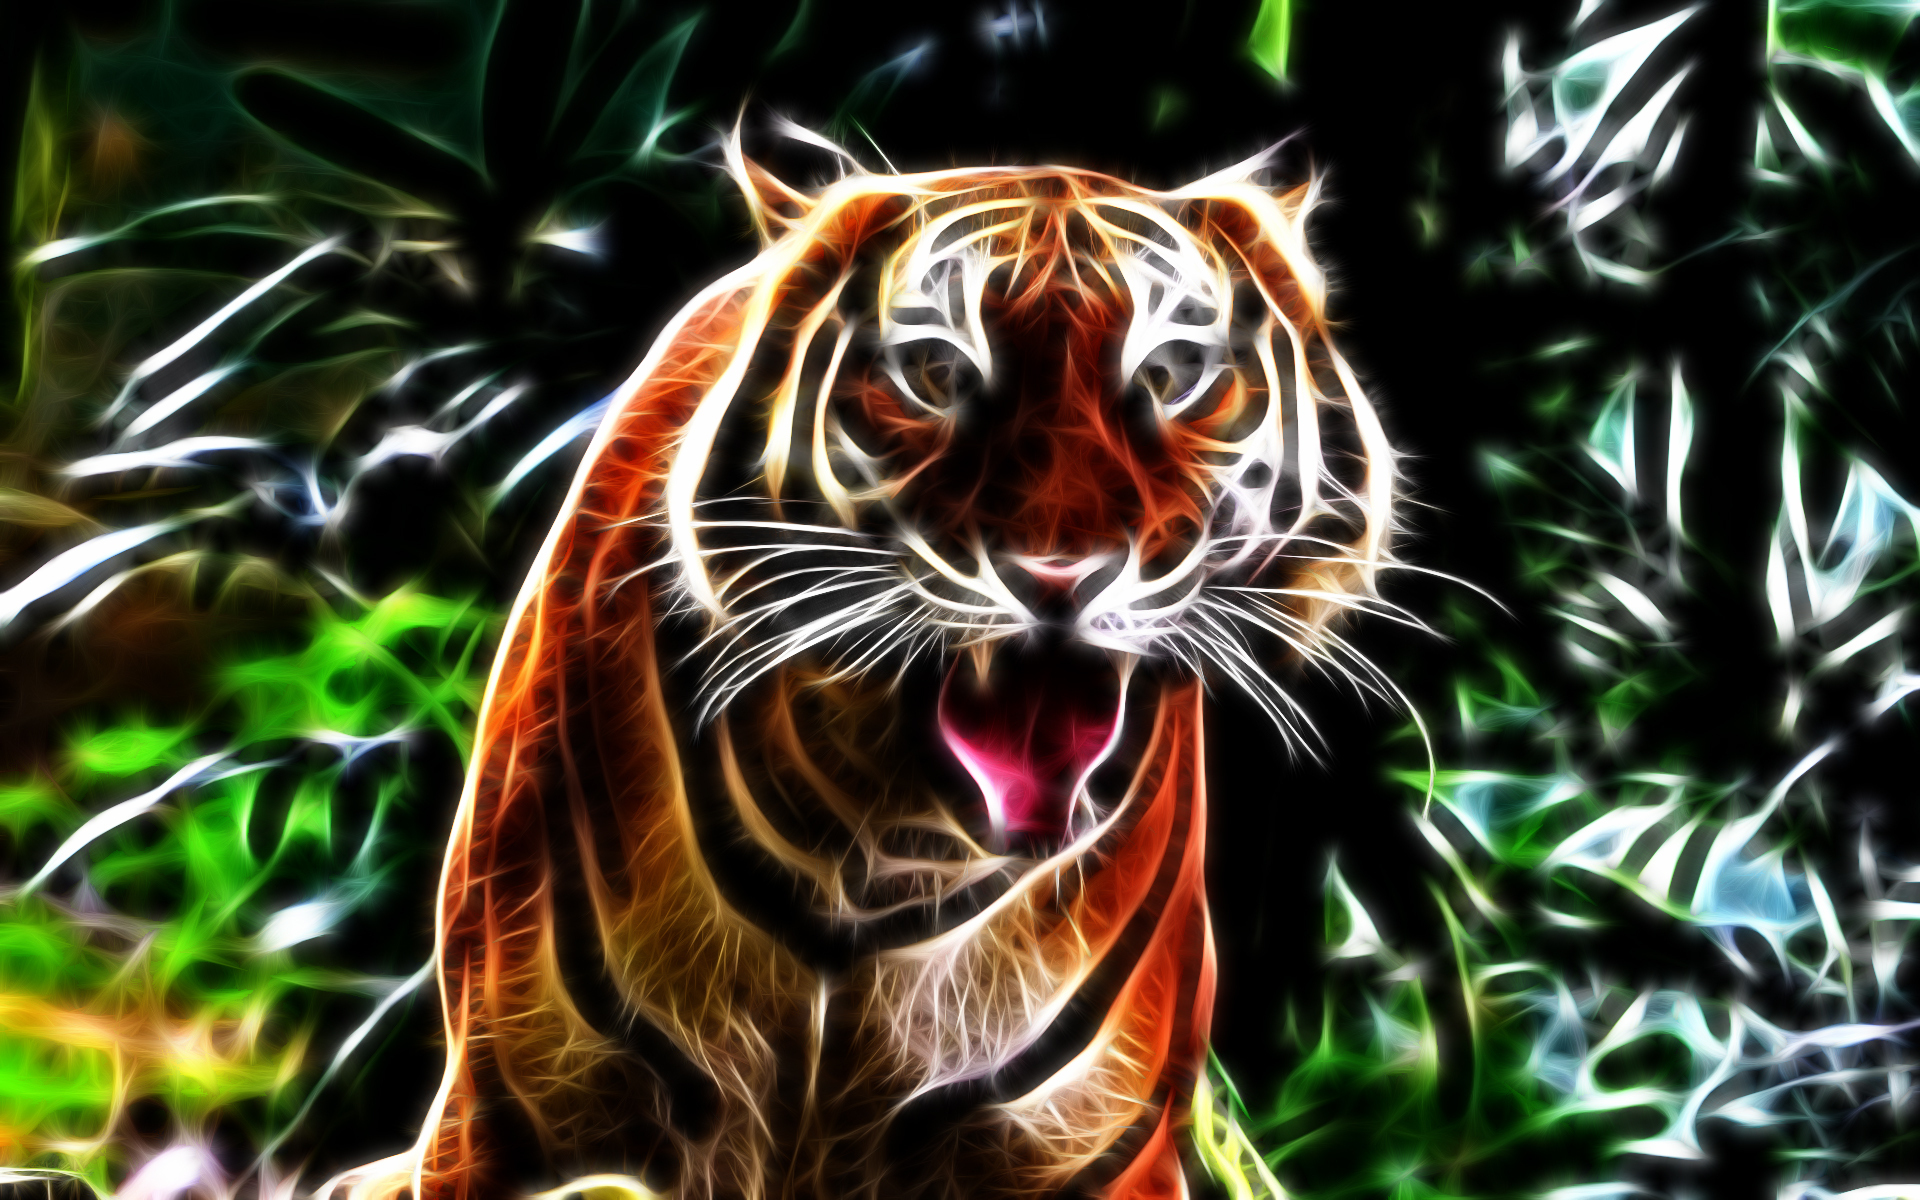 Wallpaper Tigers Big Cats 3d Graphics Angry Snout Glance 1920x1200